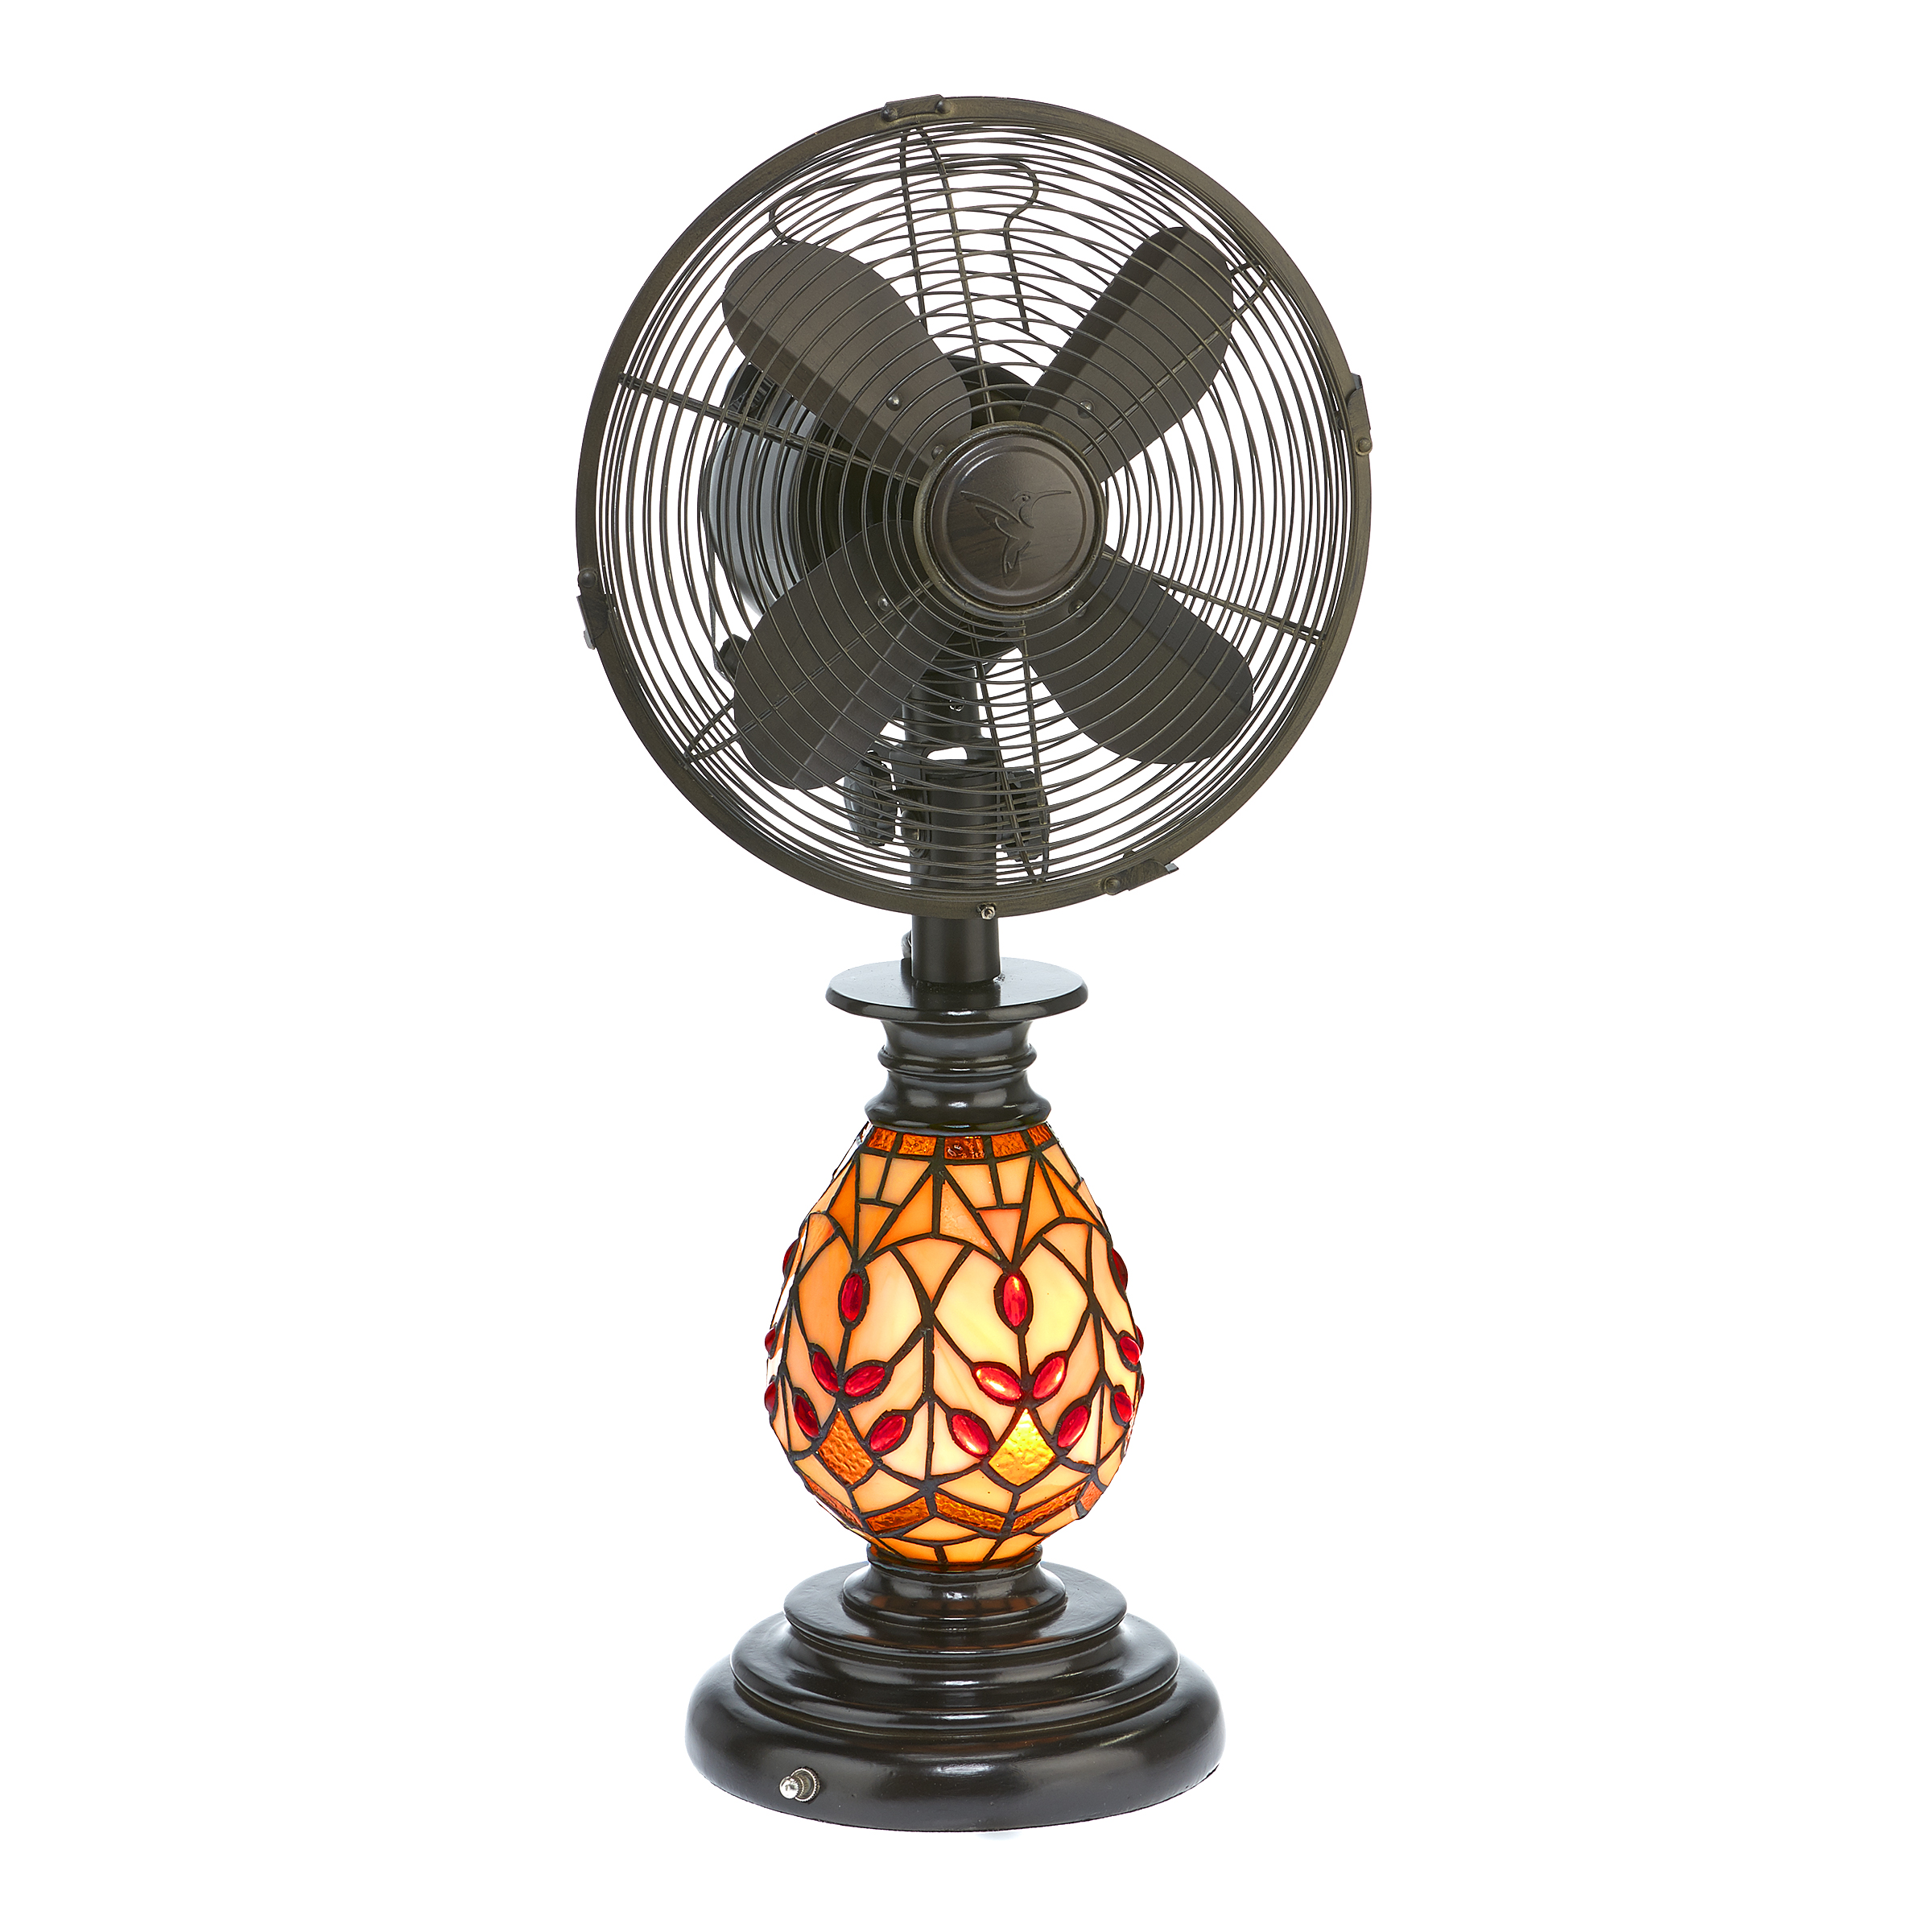 DecoBREEZE Oscillating Table Fan and Tiffany Style Table Lamp, 3-Speed Circulator Fan, 10-Inch, Edwardian